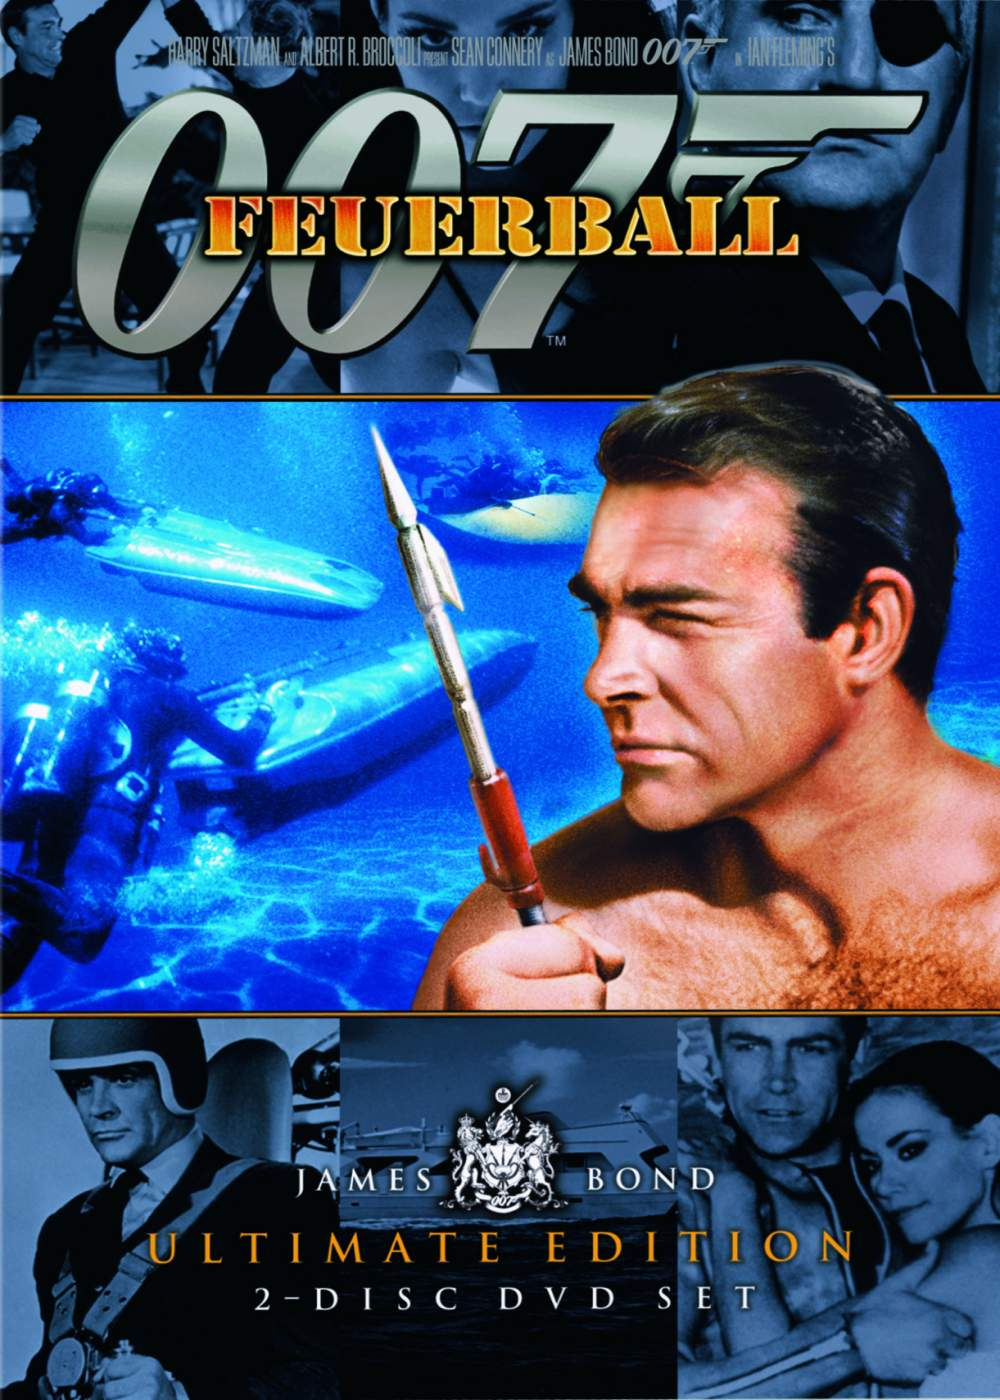 What Are Dts >> James Bond 007 - Feuerball - Film